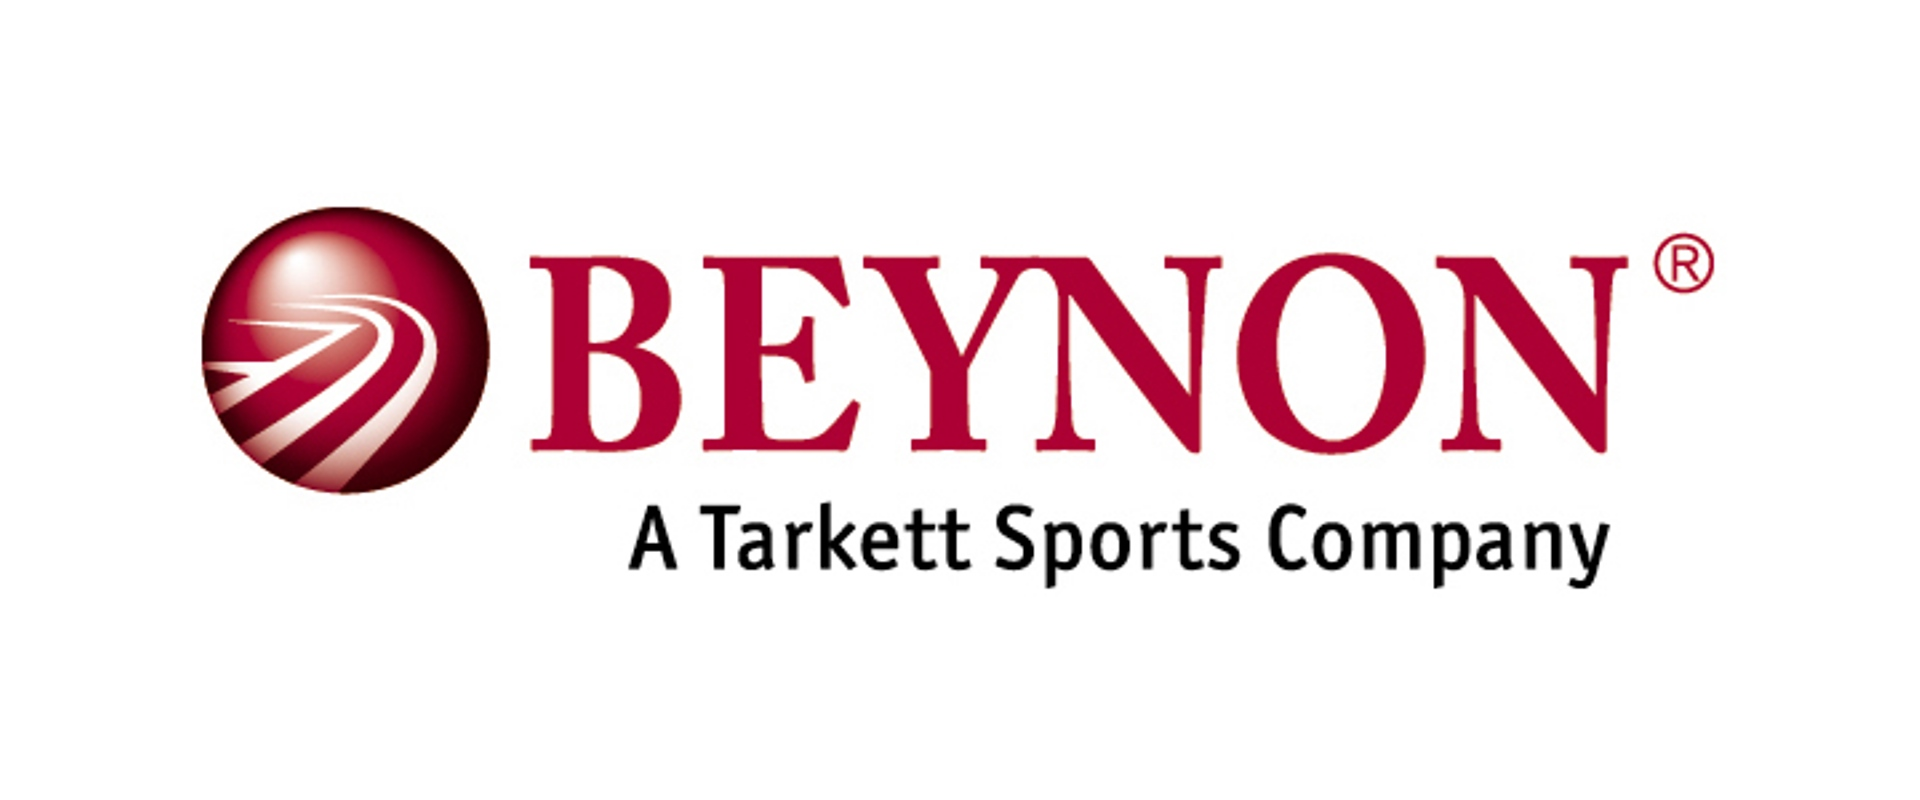 Beynon Sports Surfaces And Atlas Track Merge To Form